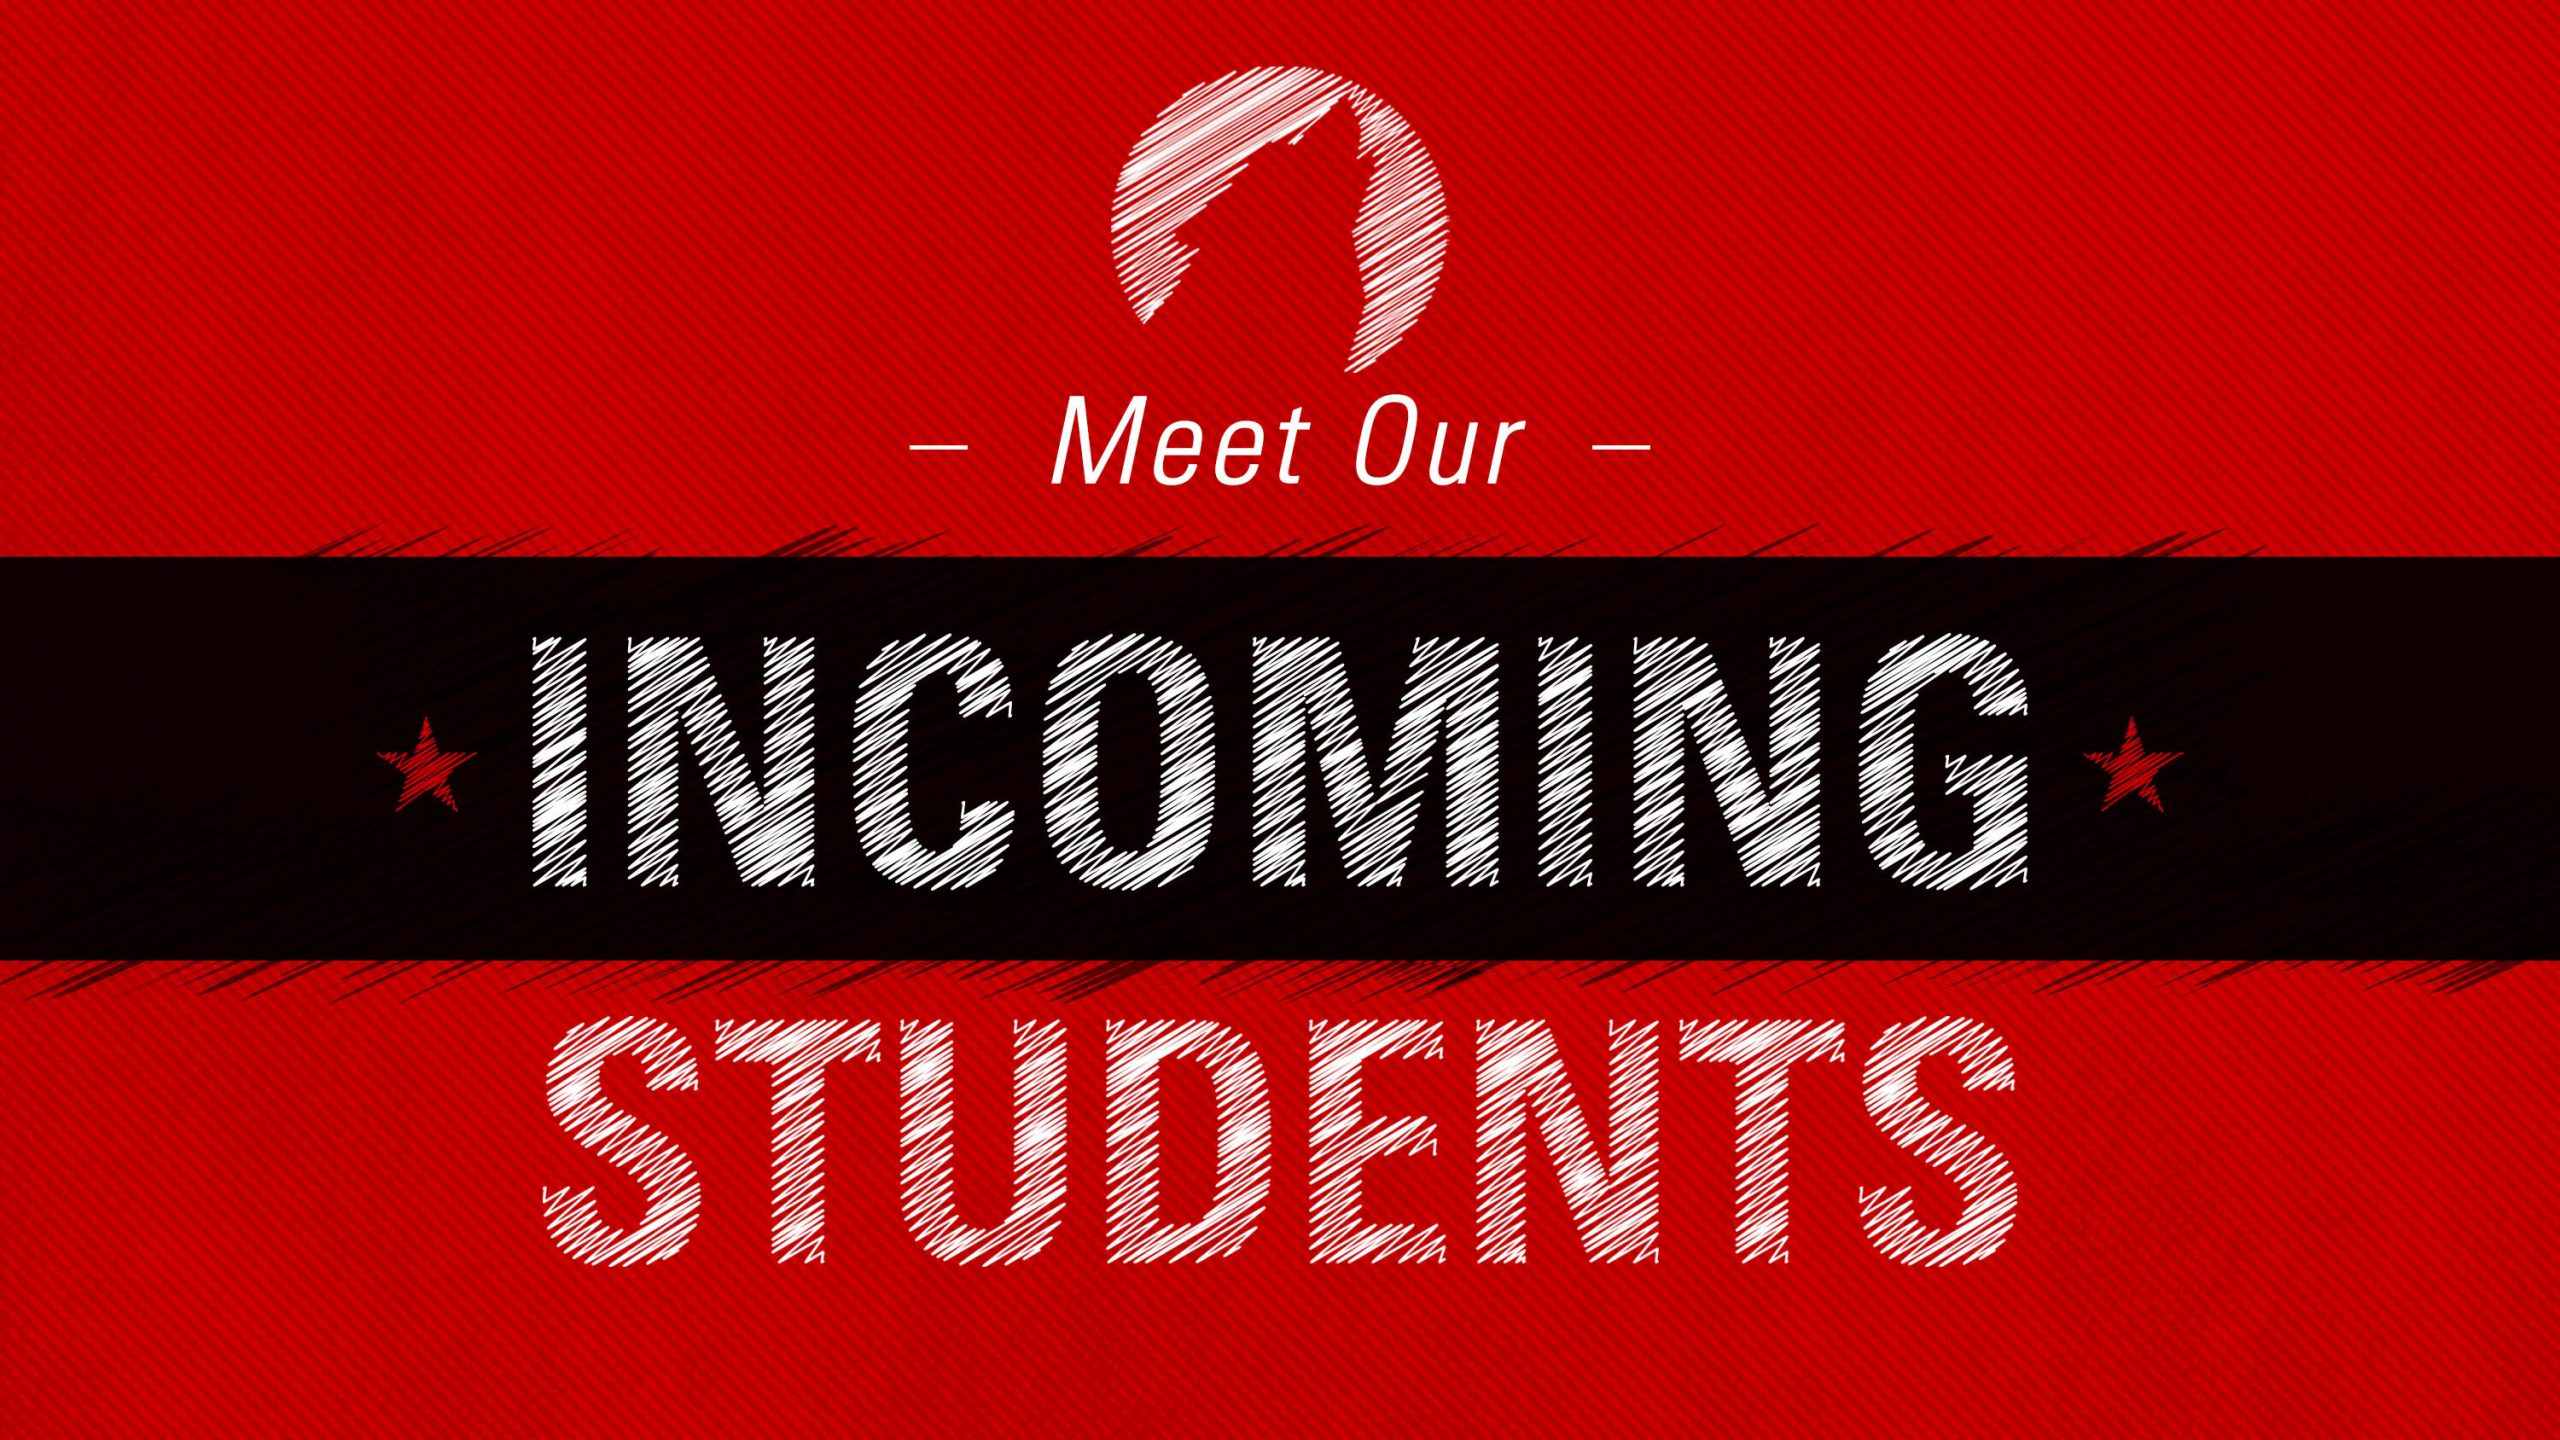 Meet Our Incoming Students